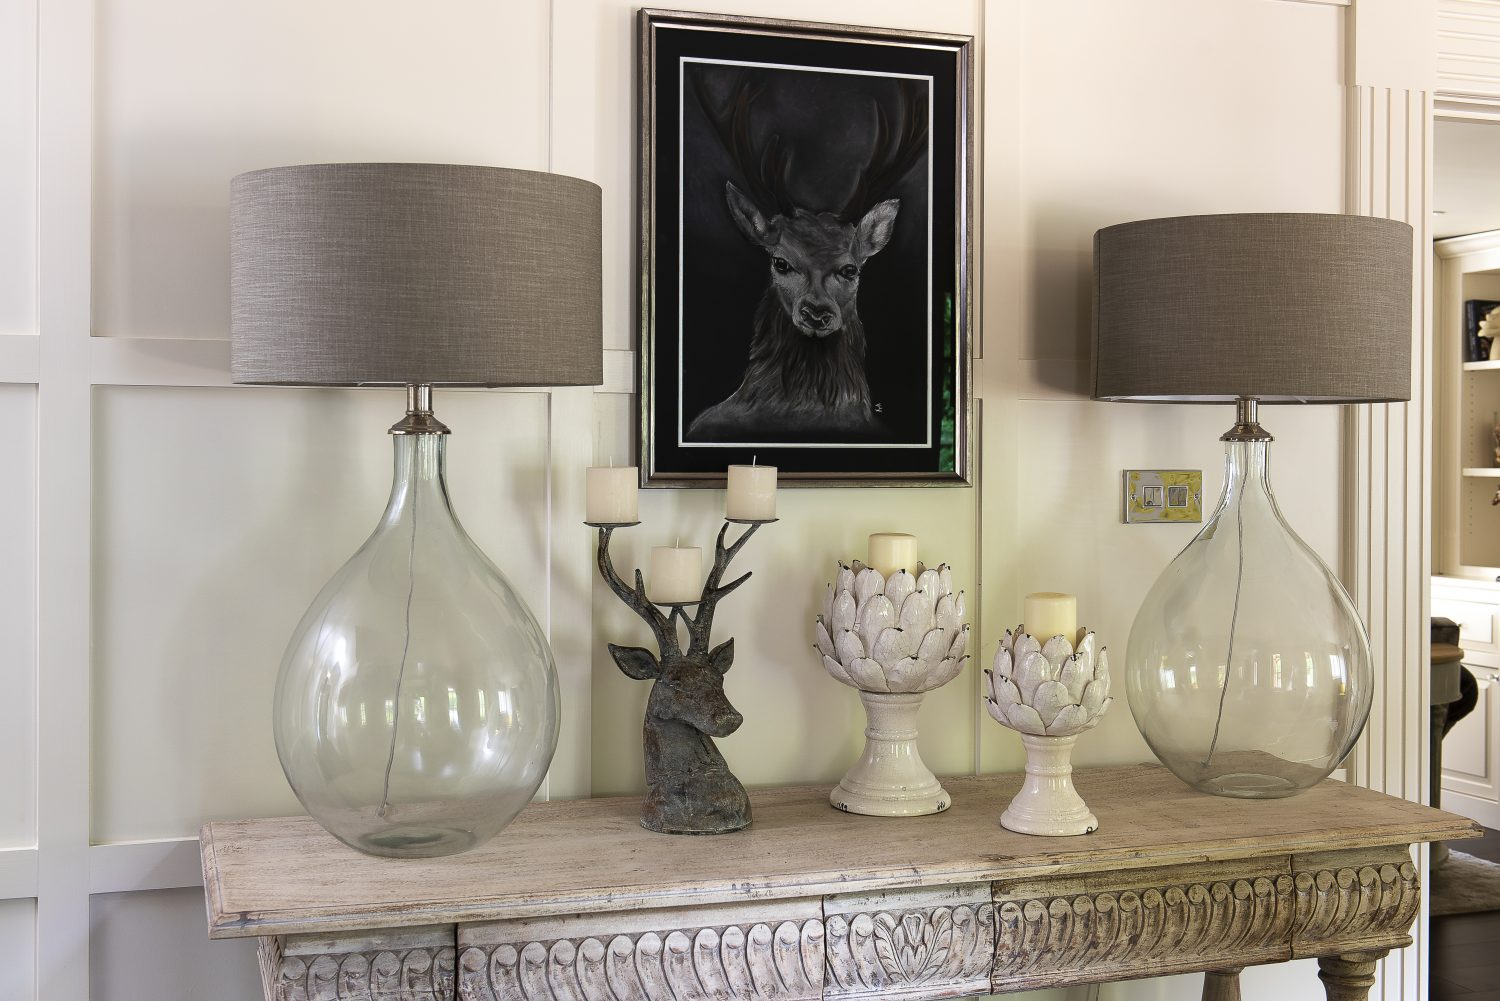 One of Karen's many animal paintings hangs above the hall table. The lamps are from OKA and the stag candelabra from one of her favourite shops, Flowerhouse and Hom